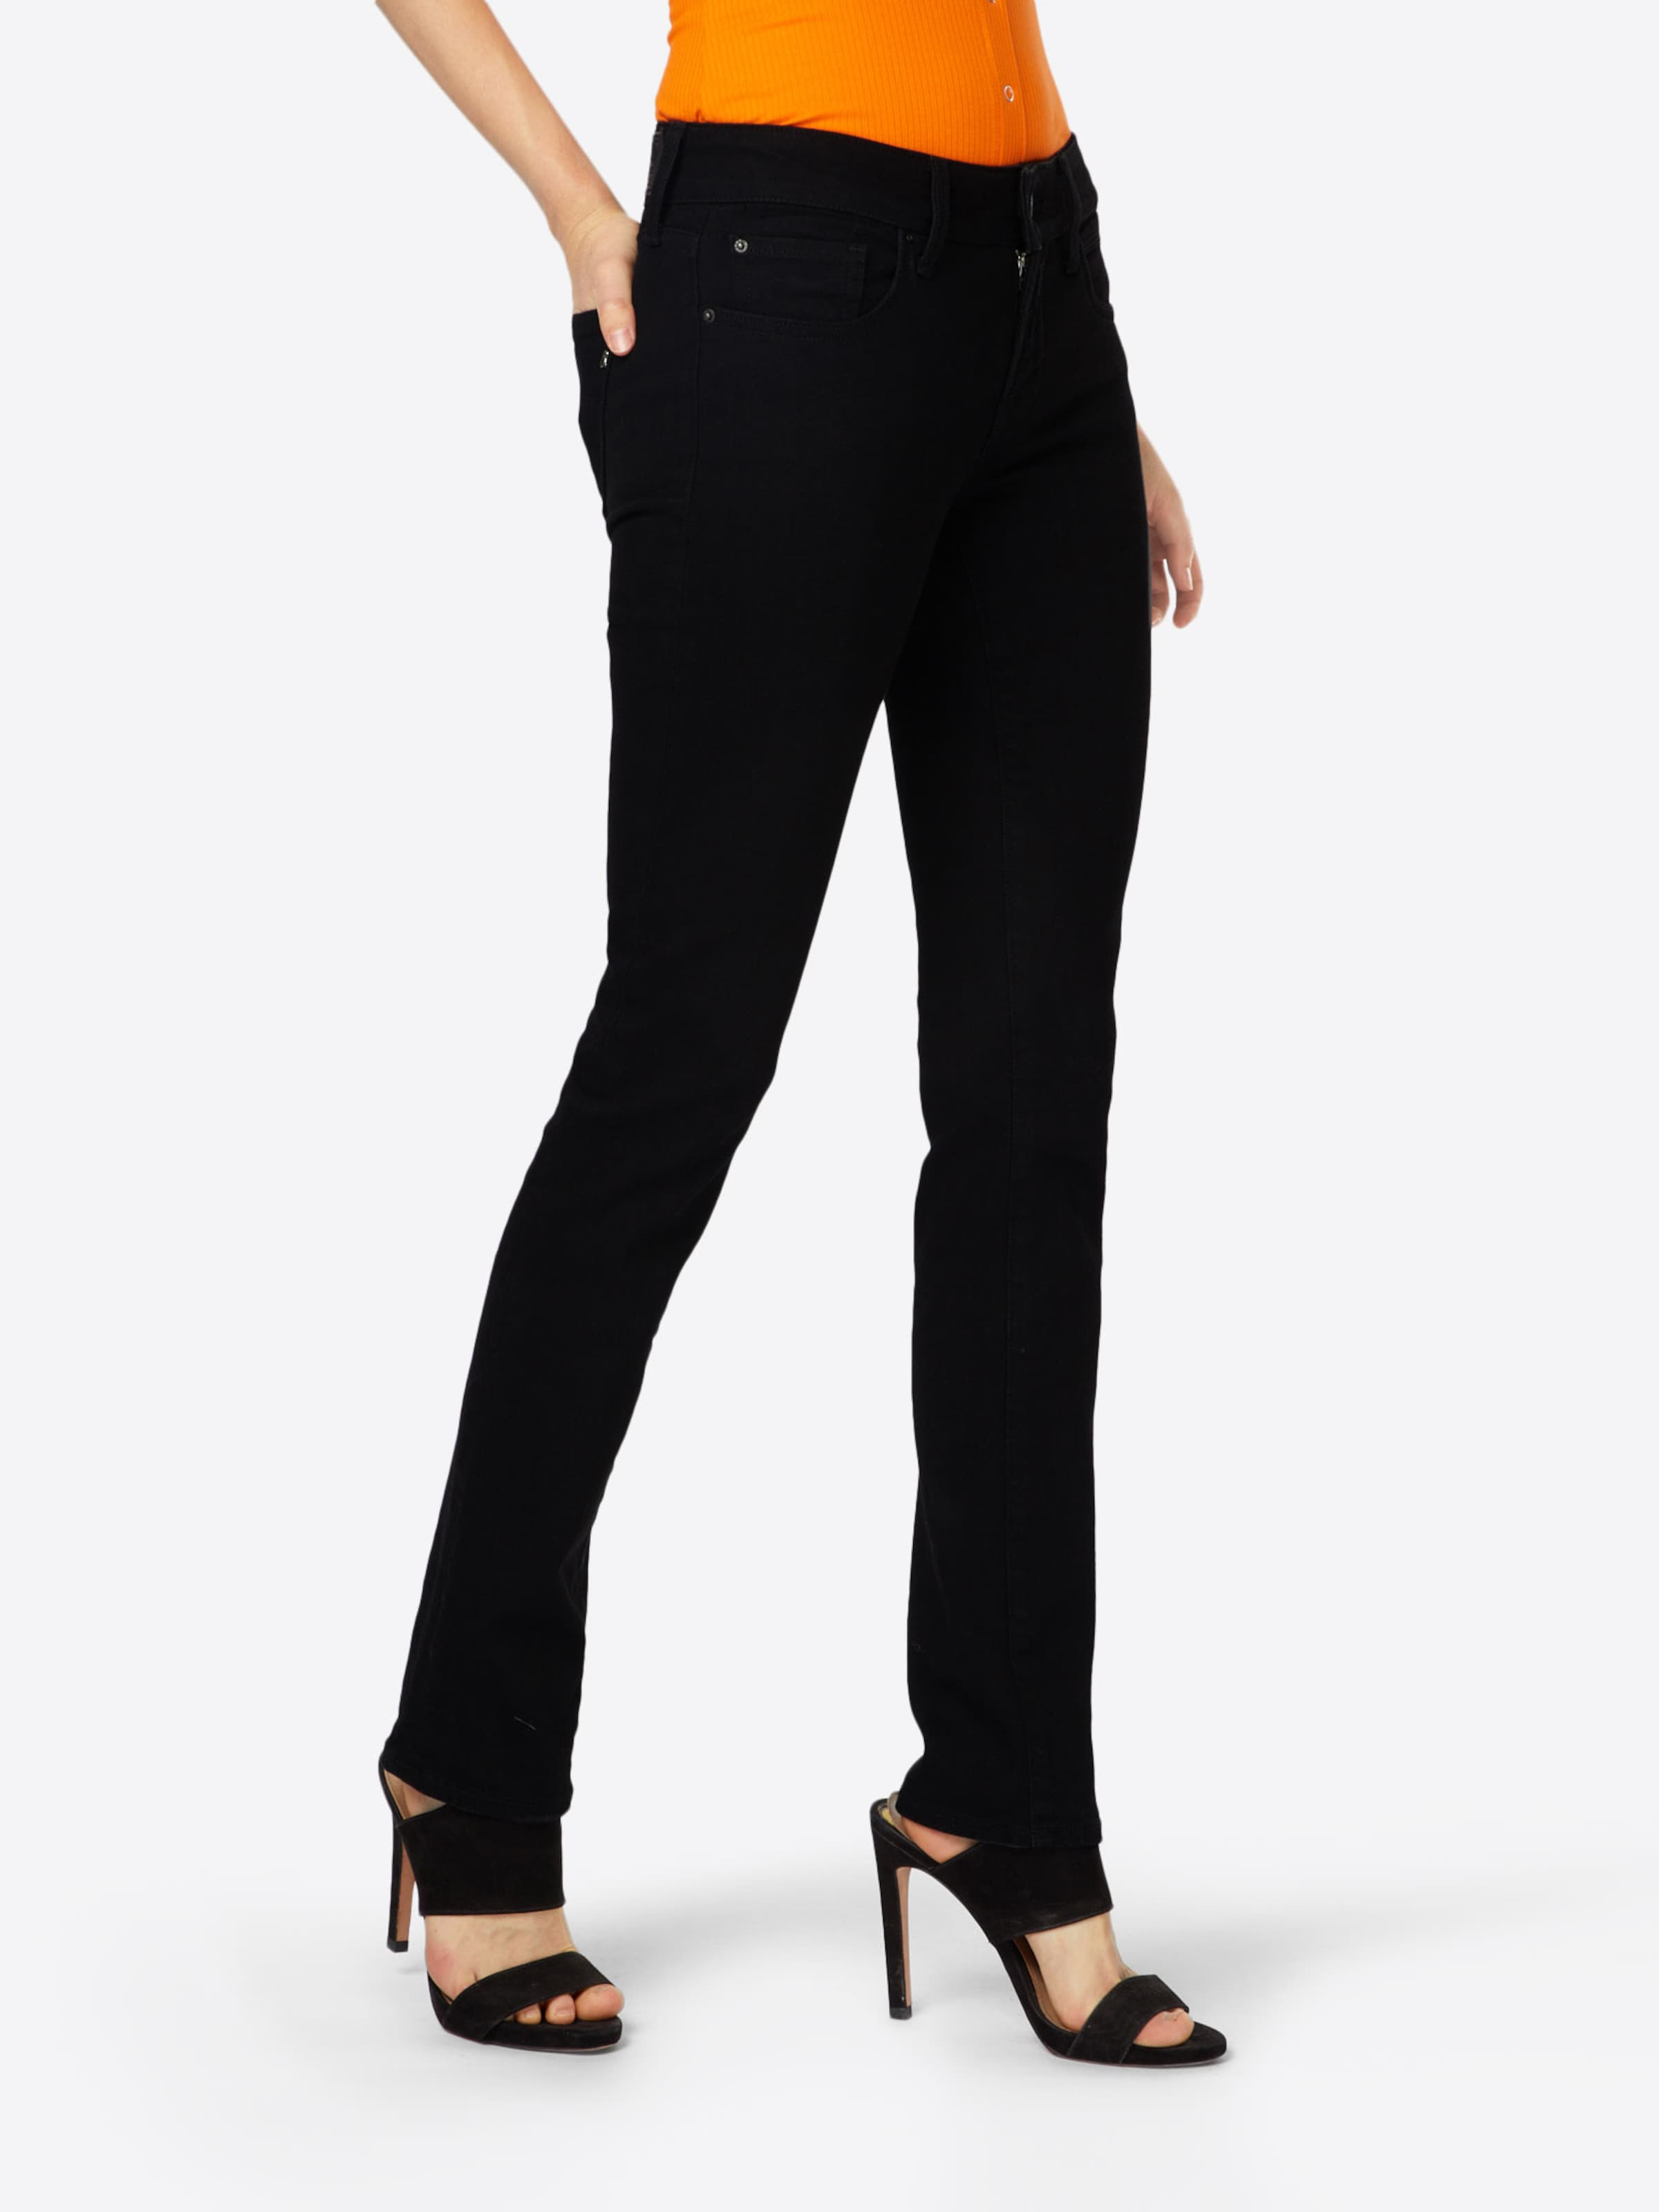 Replay Replay Denim 'vicki' In 'vicki' Denim Black hsQrdCt